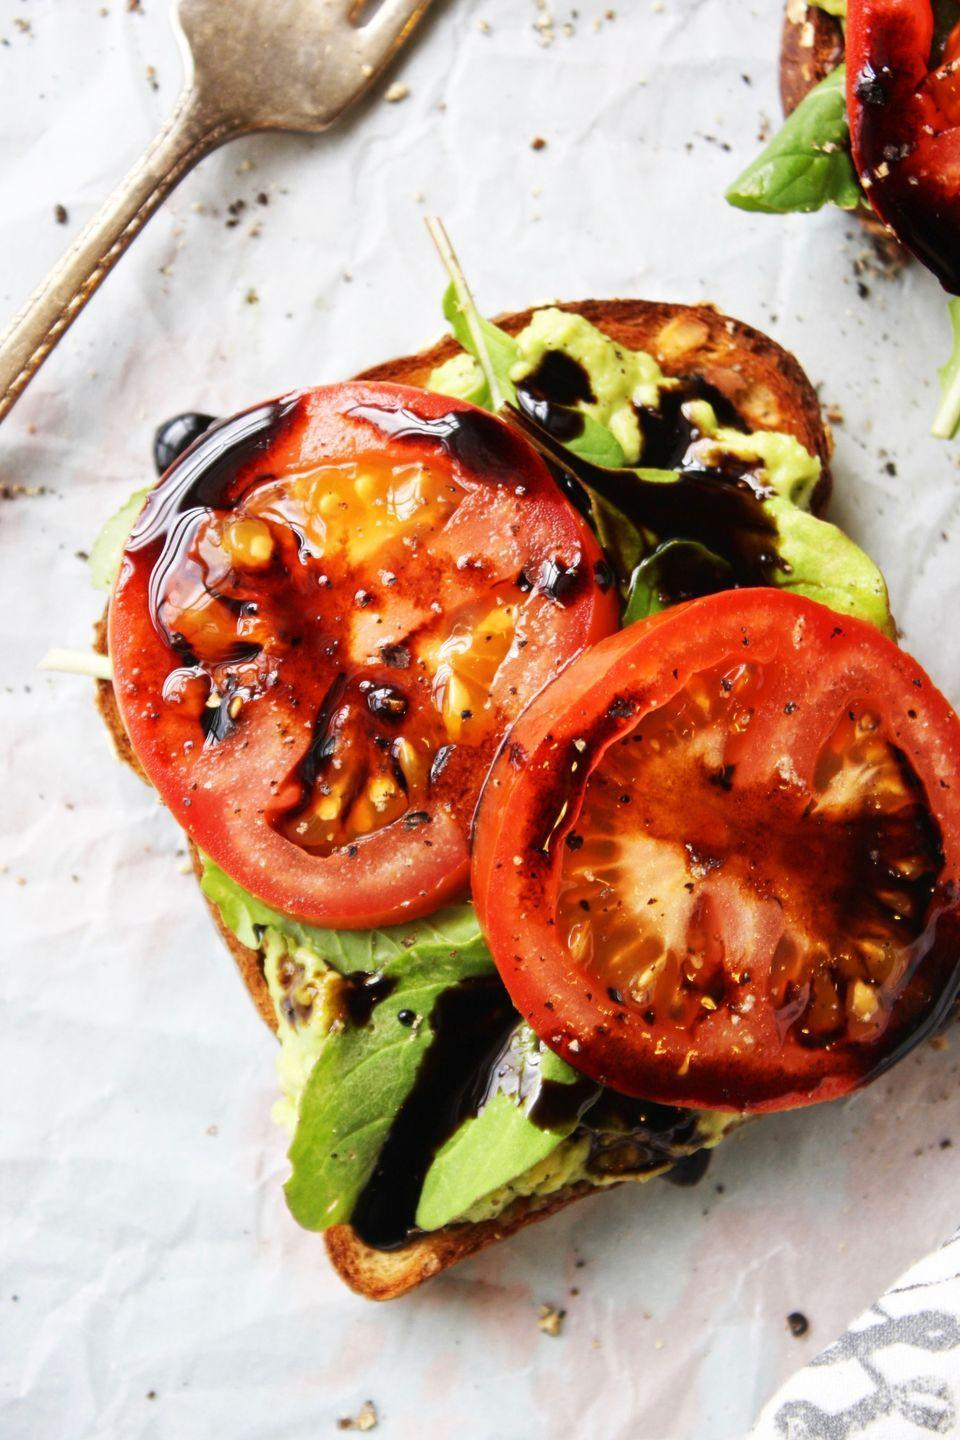 """<p>Not your average avocado toast.</p><p>Get the recipe from<span class=""""redactor-invisible-space""""> <a href=""""http://www.thegarlicdiaries.com/avocado-arugula-and-tomato-toasts-with-easy-balsamic-syrup/"""" rel=""""nofollow noopener"""" target=""""_blank"""" data-ylk=""""slk:The Garlic Diaries"""" class=""""link rapid-noclick-resp"""">The Garlic Diaries</a>.</span></p>"""